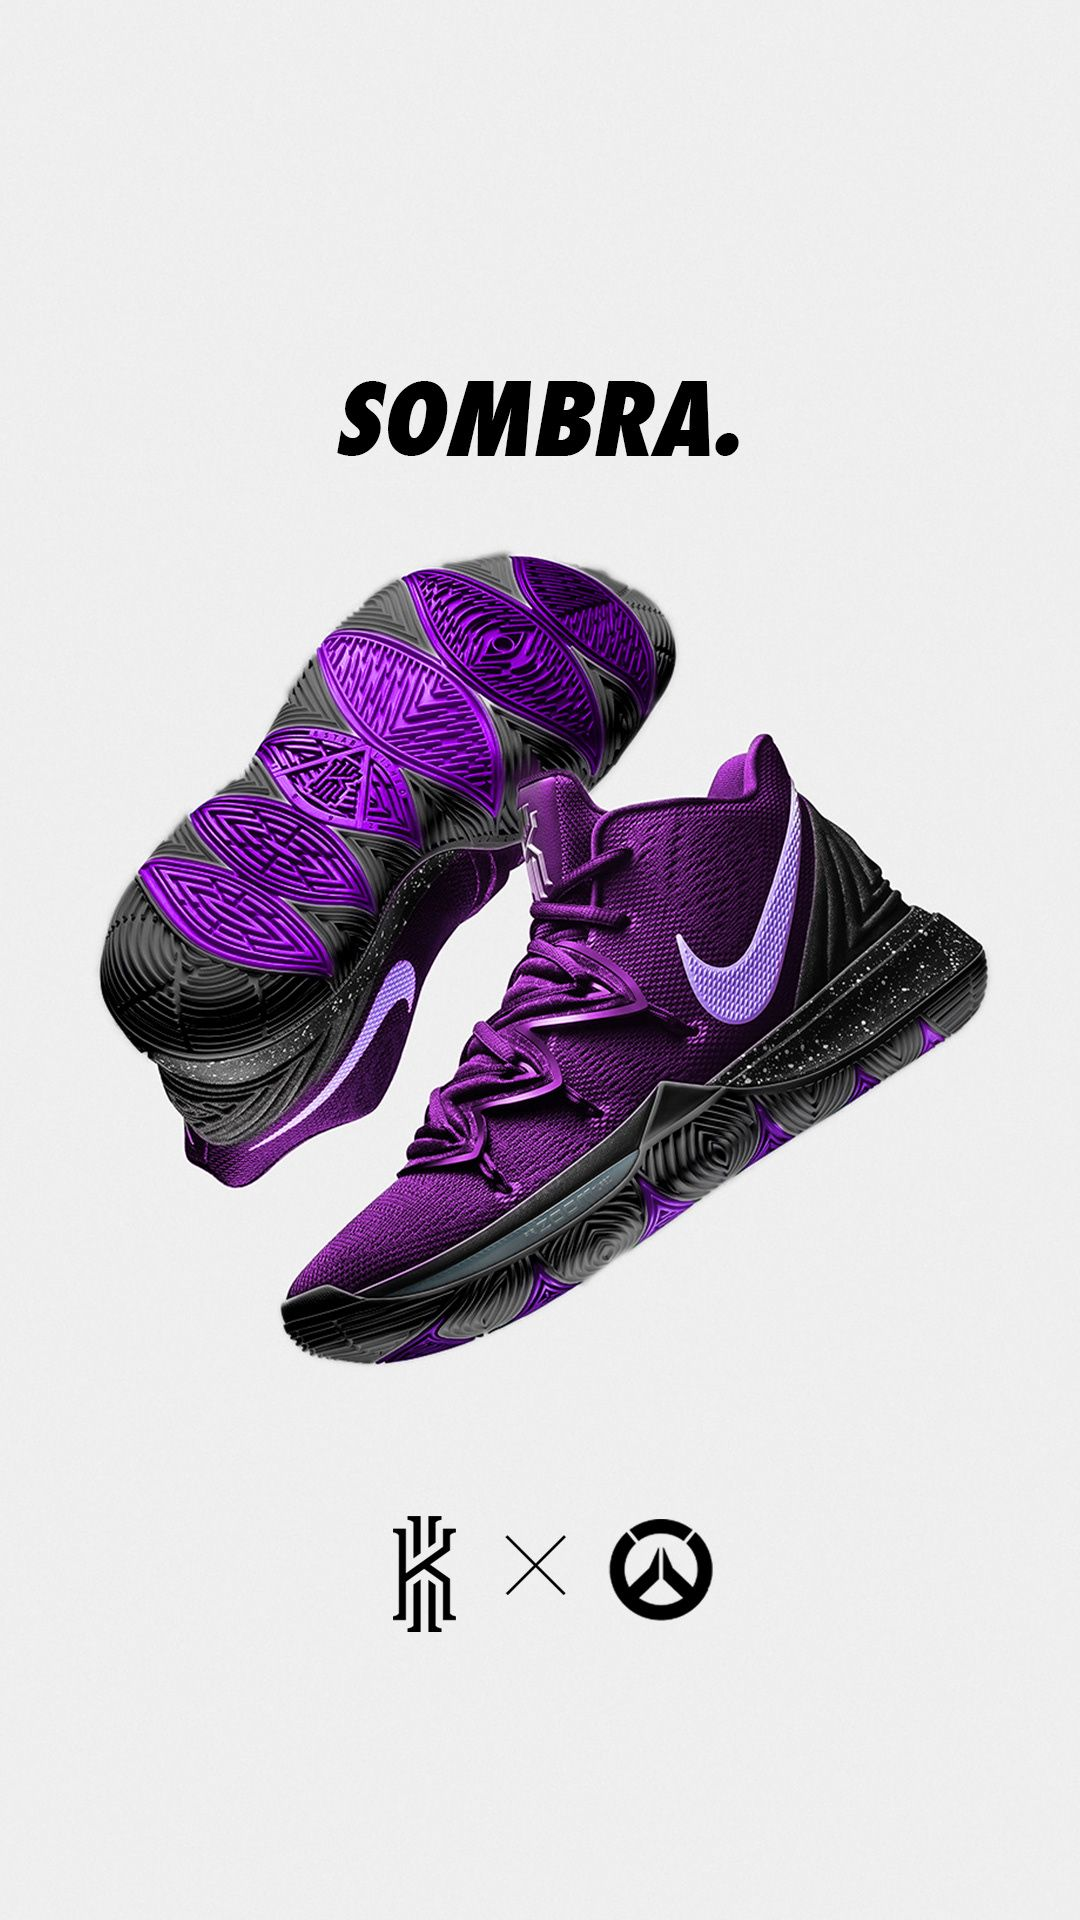 a6a149515c3f Nike Kyrie 5 X Overwatch Concepts on Behance